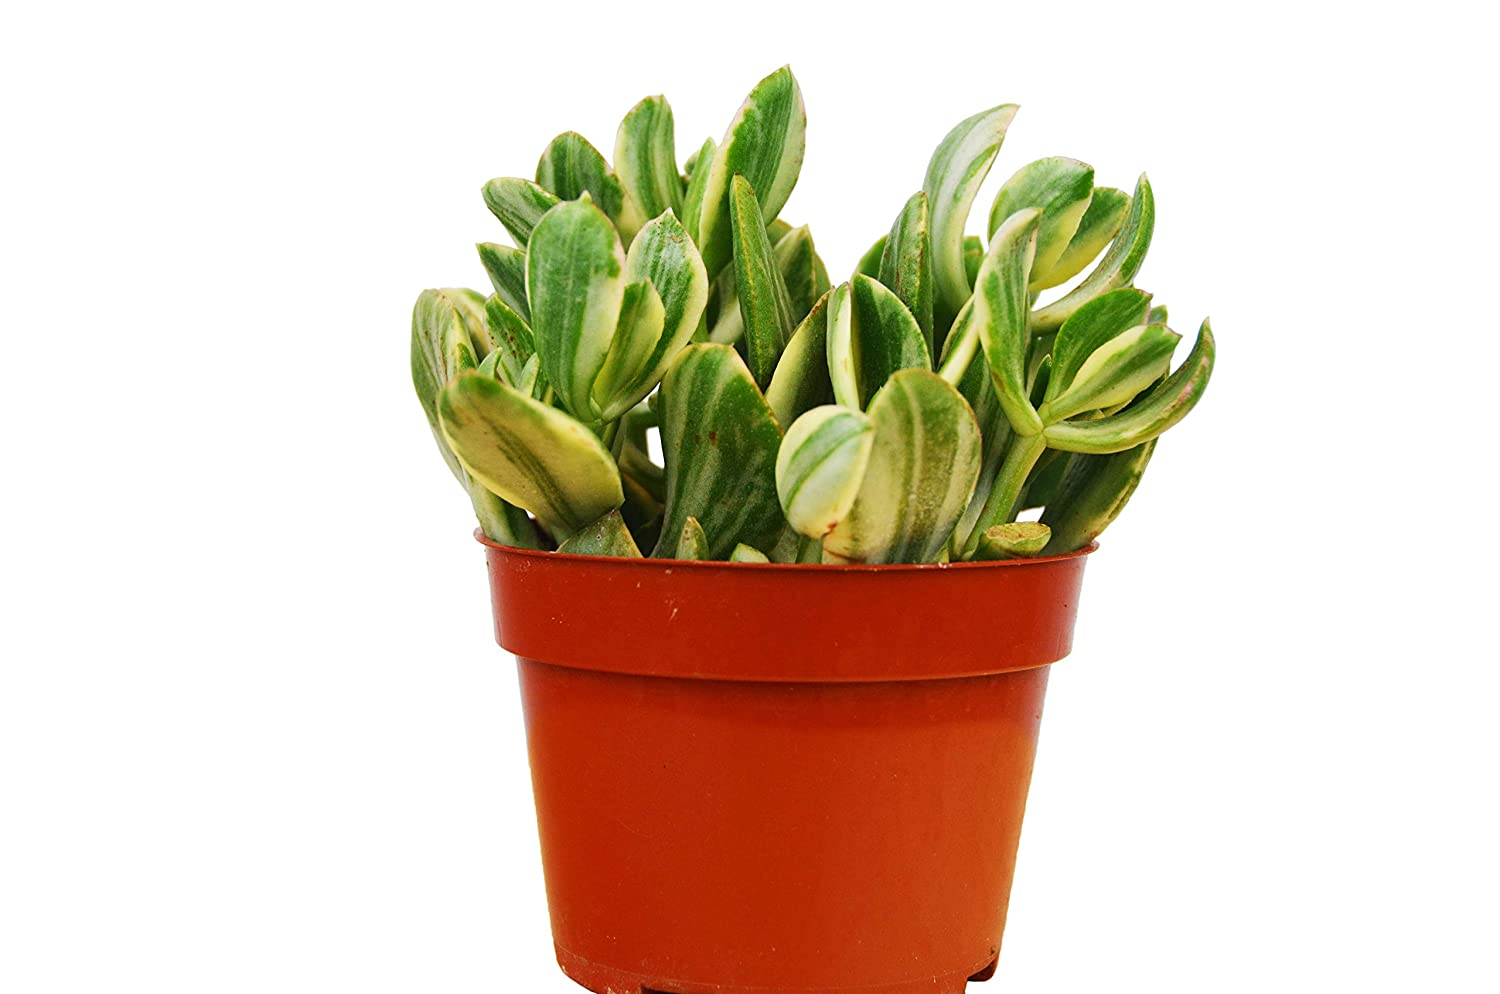 Amazon.com: Crassula Ovata Variegated Jade Succulent / 4 ...